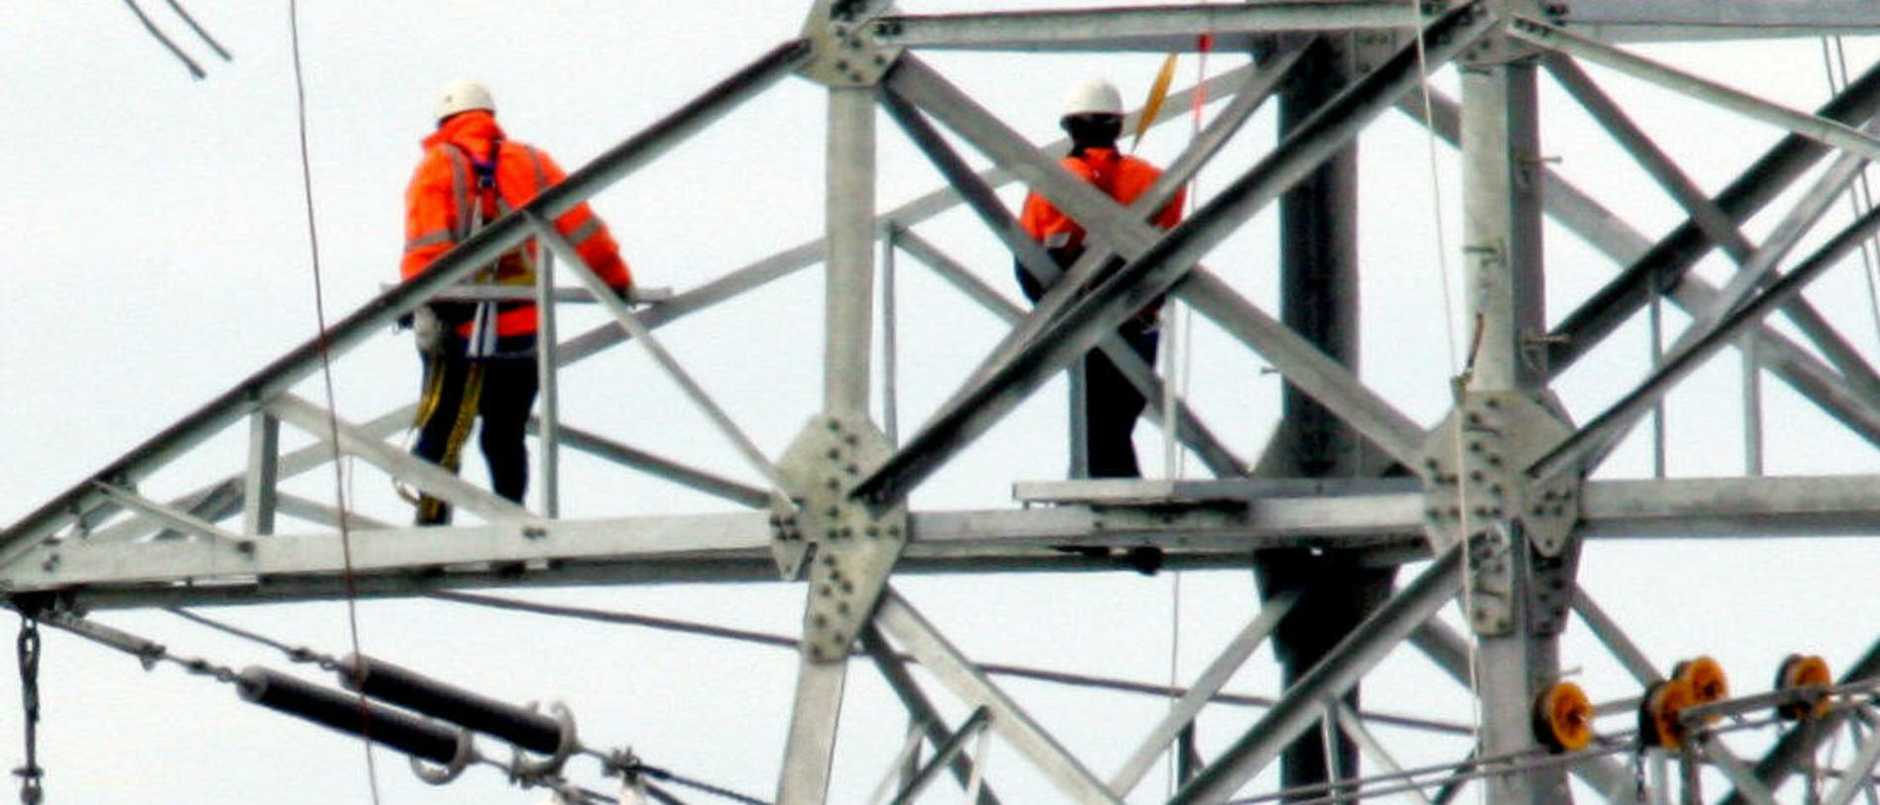 06 Sept 2005 Powerlink workers high up on new transmission towers as they build a high voltage powerline from the Murarrie Sub Station - PicBruce/Long electricity power construction tower